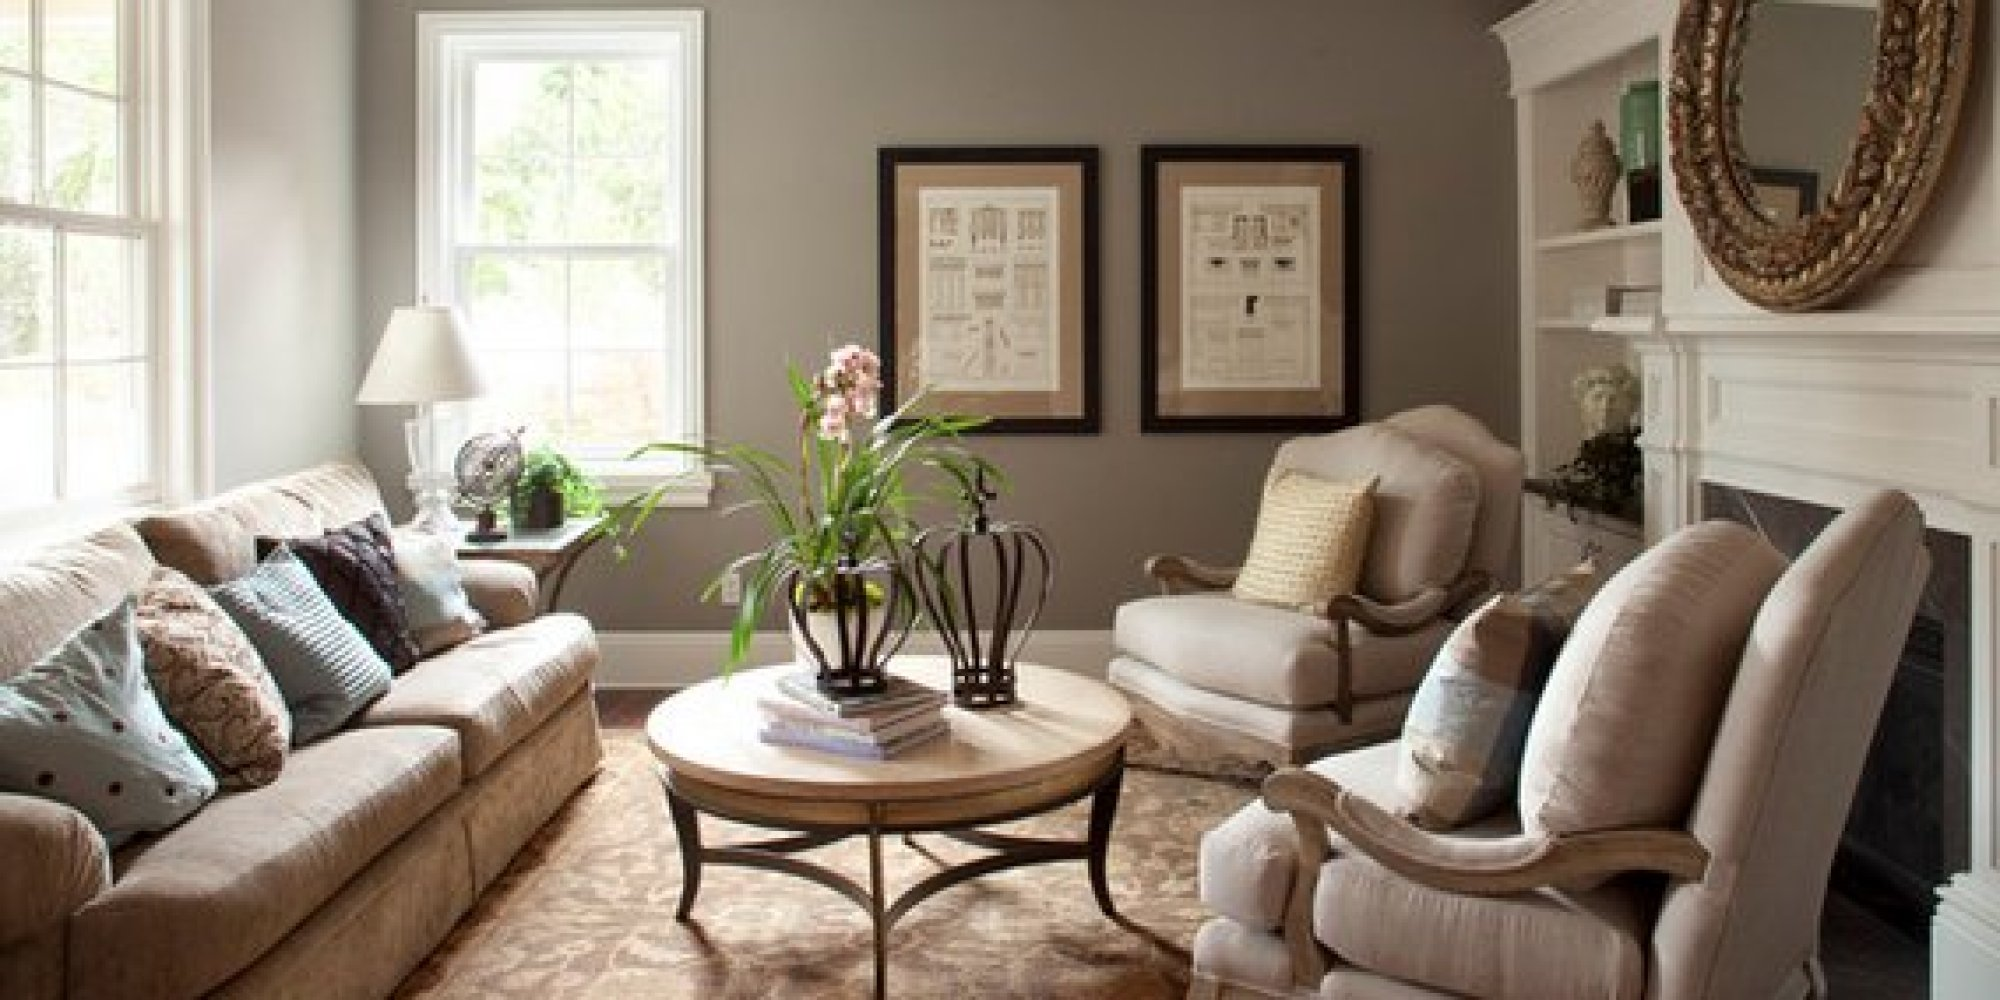 Living Room Paint Ideas 2014 the 6 best paint colors that work in any home | huffpost